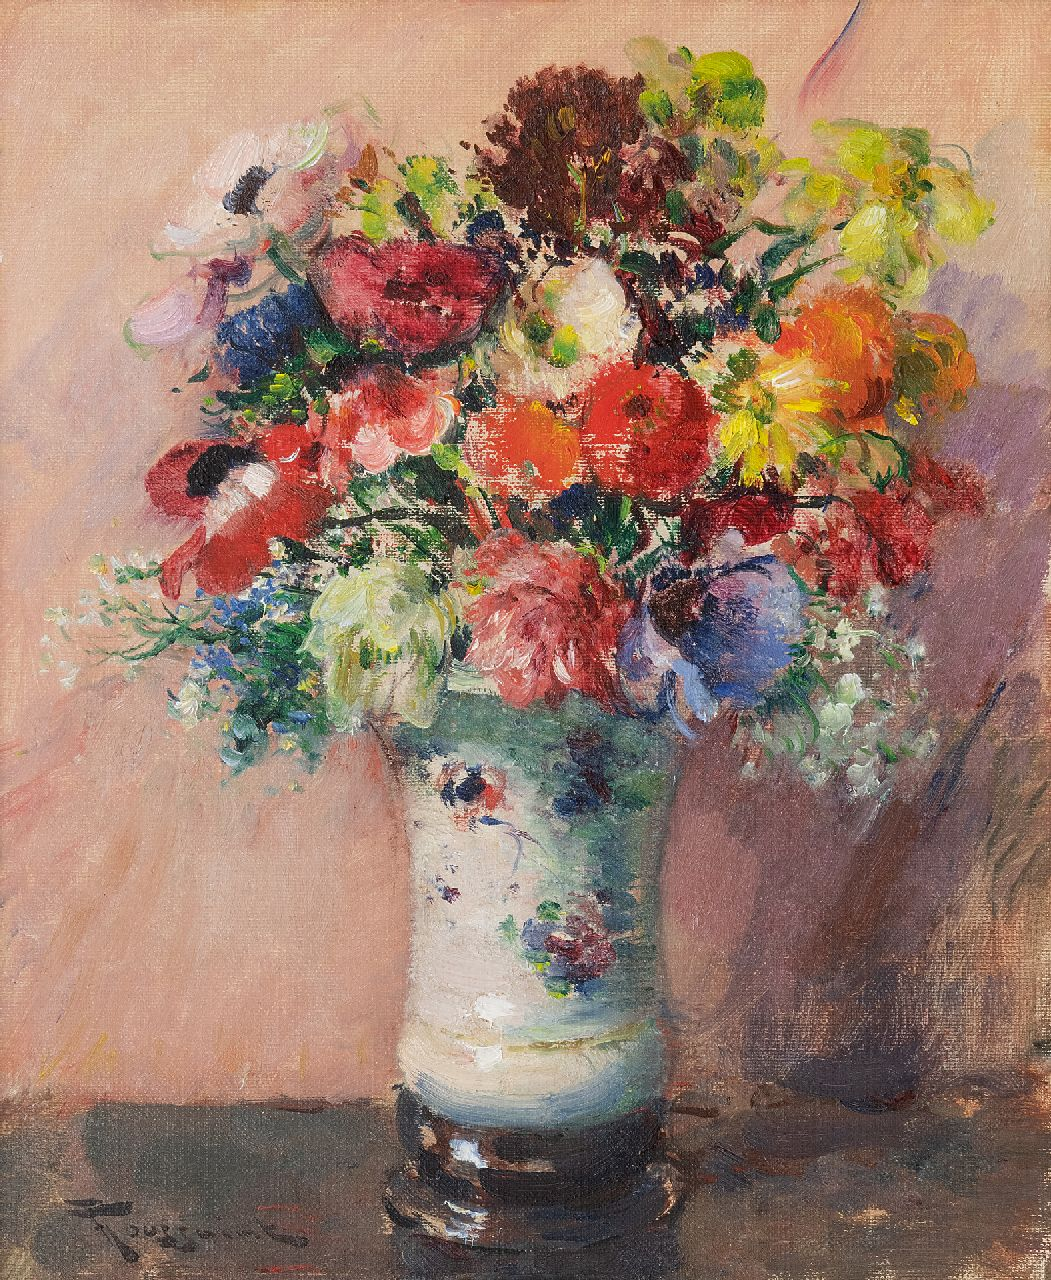 Toussaint F.  | Fernand Toussaint | Paintings offered for sale | Summer flowers, oil on painter's board 46.0 x 37.1 cm, signed l.l.